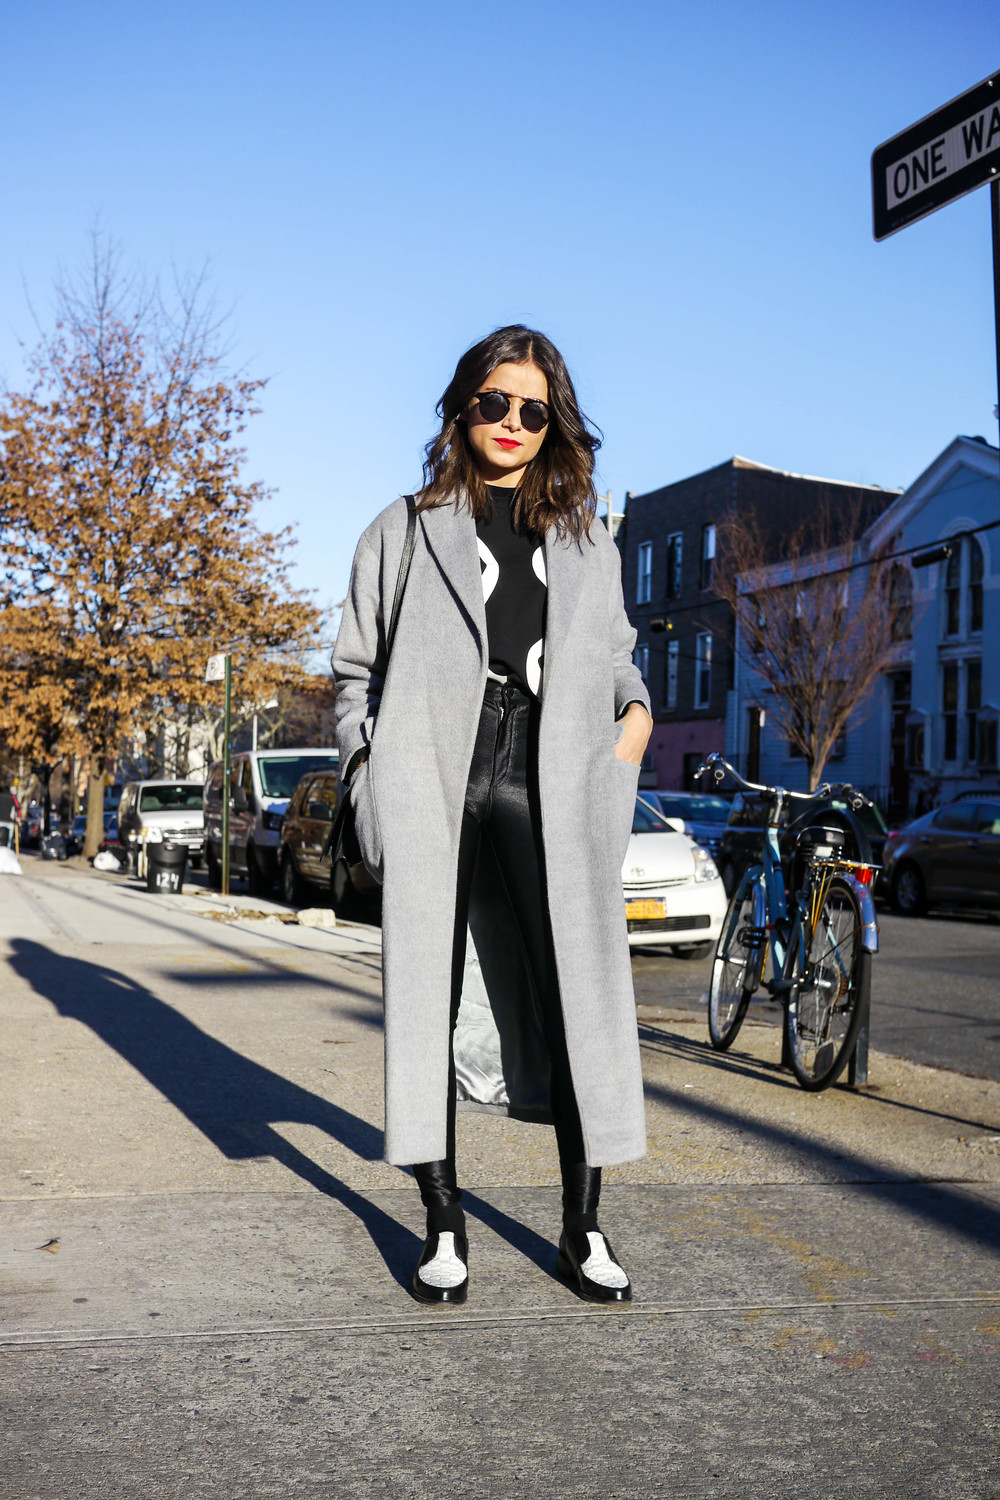 Top: JNOUN ,  Pants: American Apparel , Shoes: & Other Stories, Sunglasses: Awoke Vintage, Coat: Acne